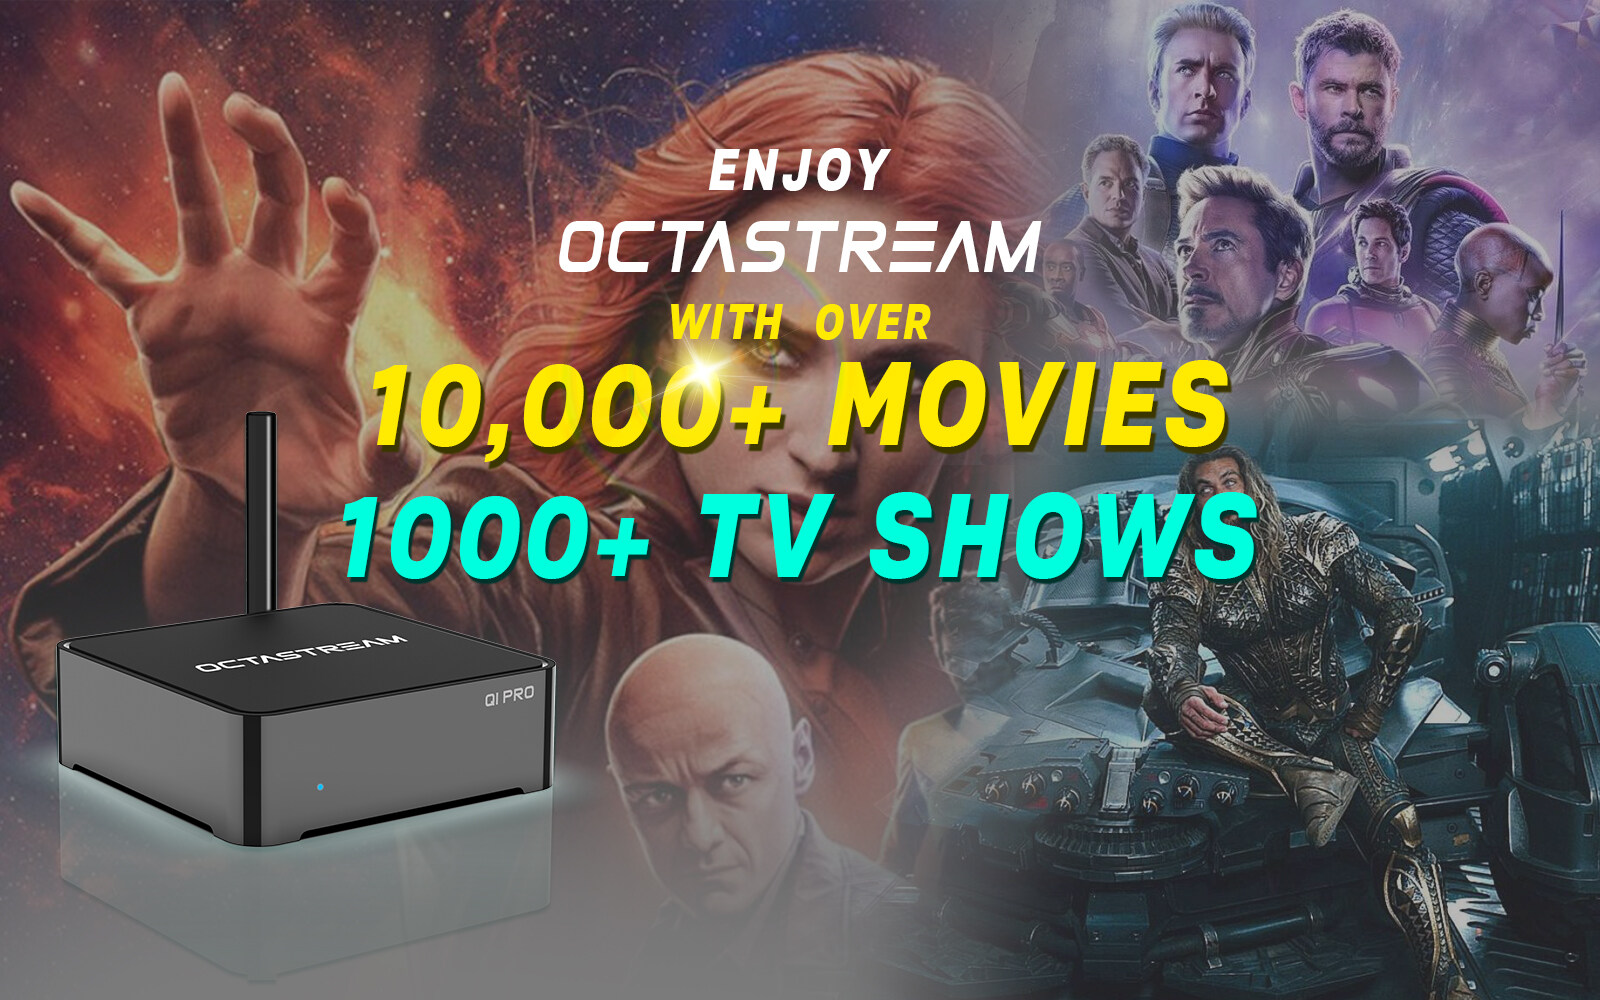 Unlimited service iptv streaming tv box Octastream Q1 pro ...